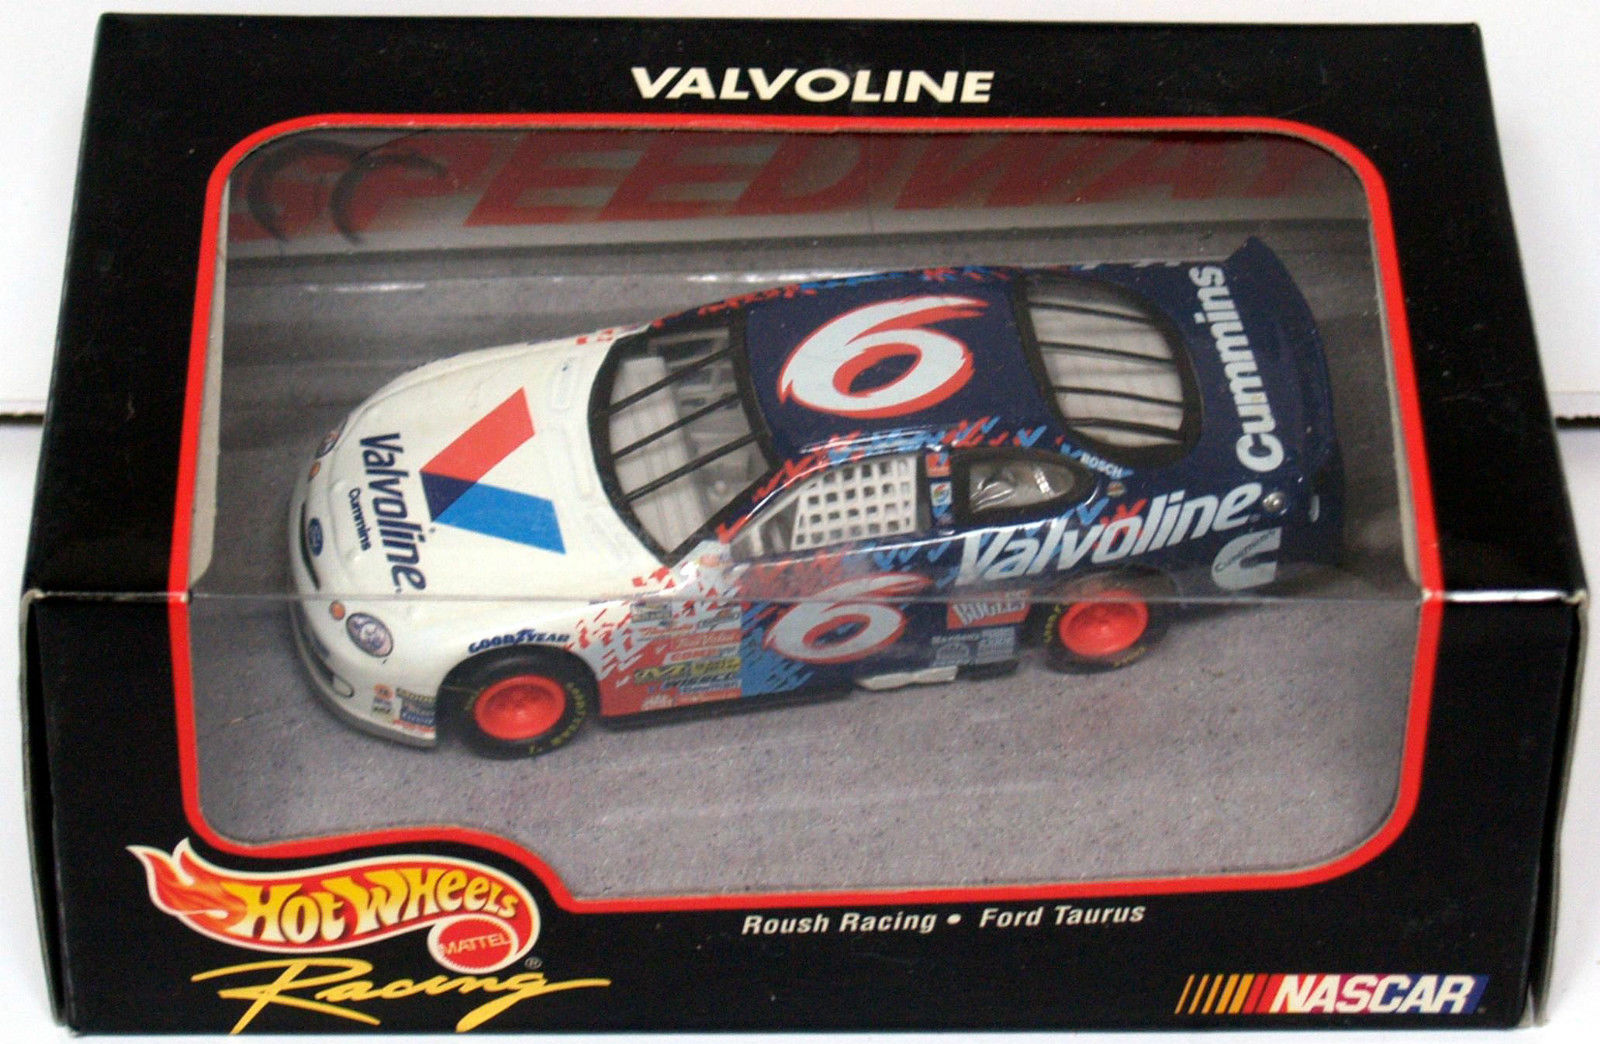 HOT WHEELS RACING 1998 - VALVOLINE #6